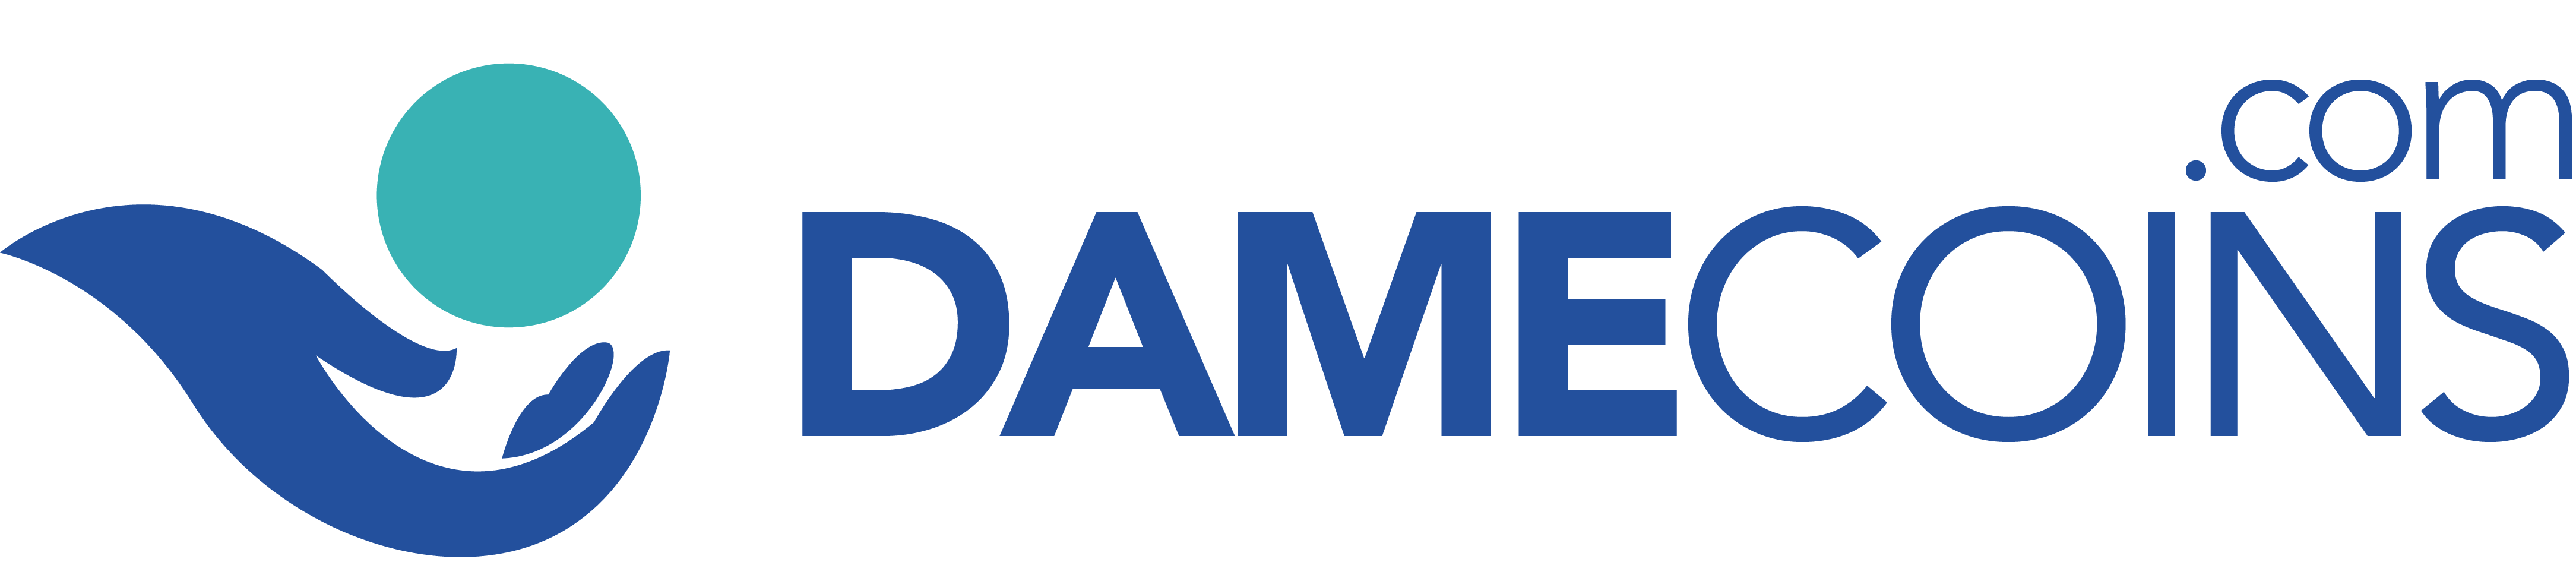 Damecoins Logo